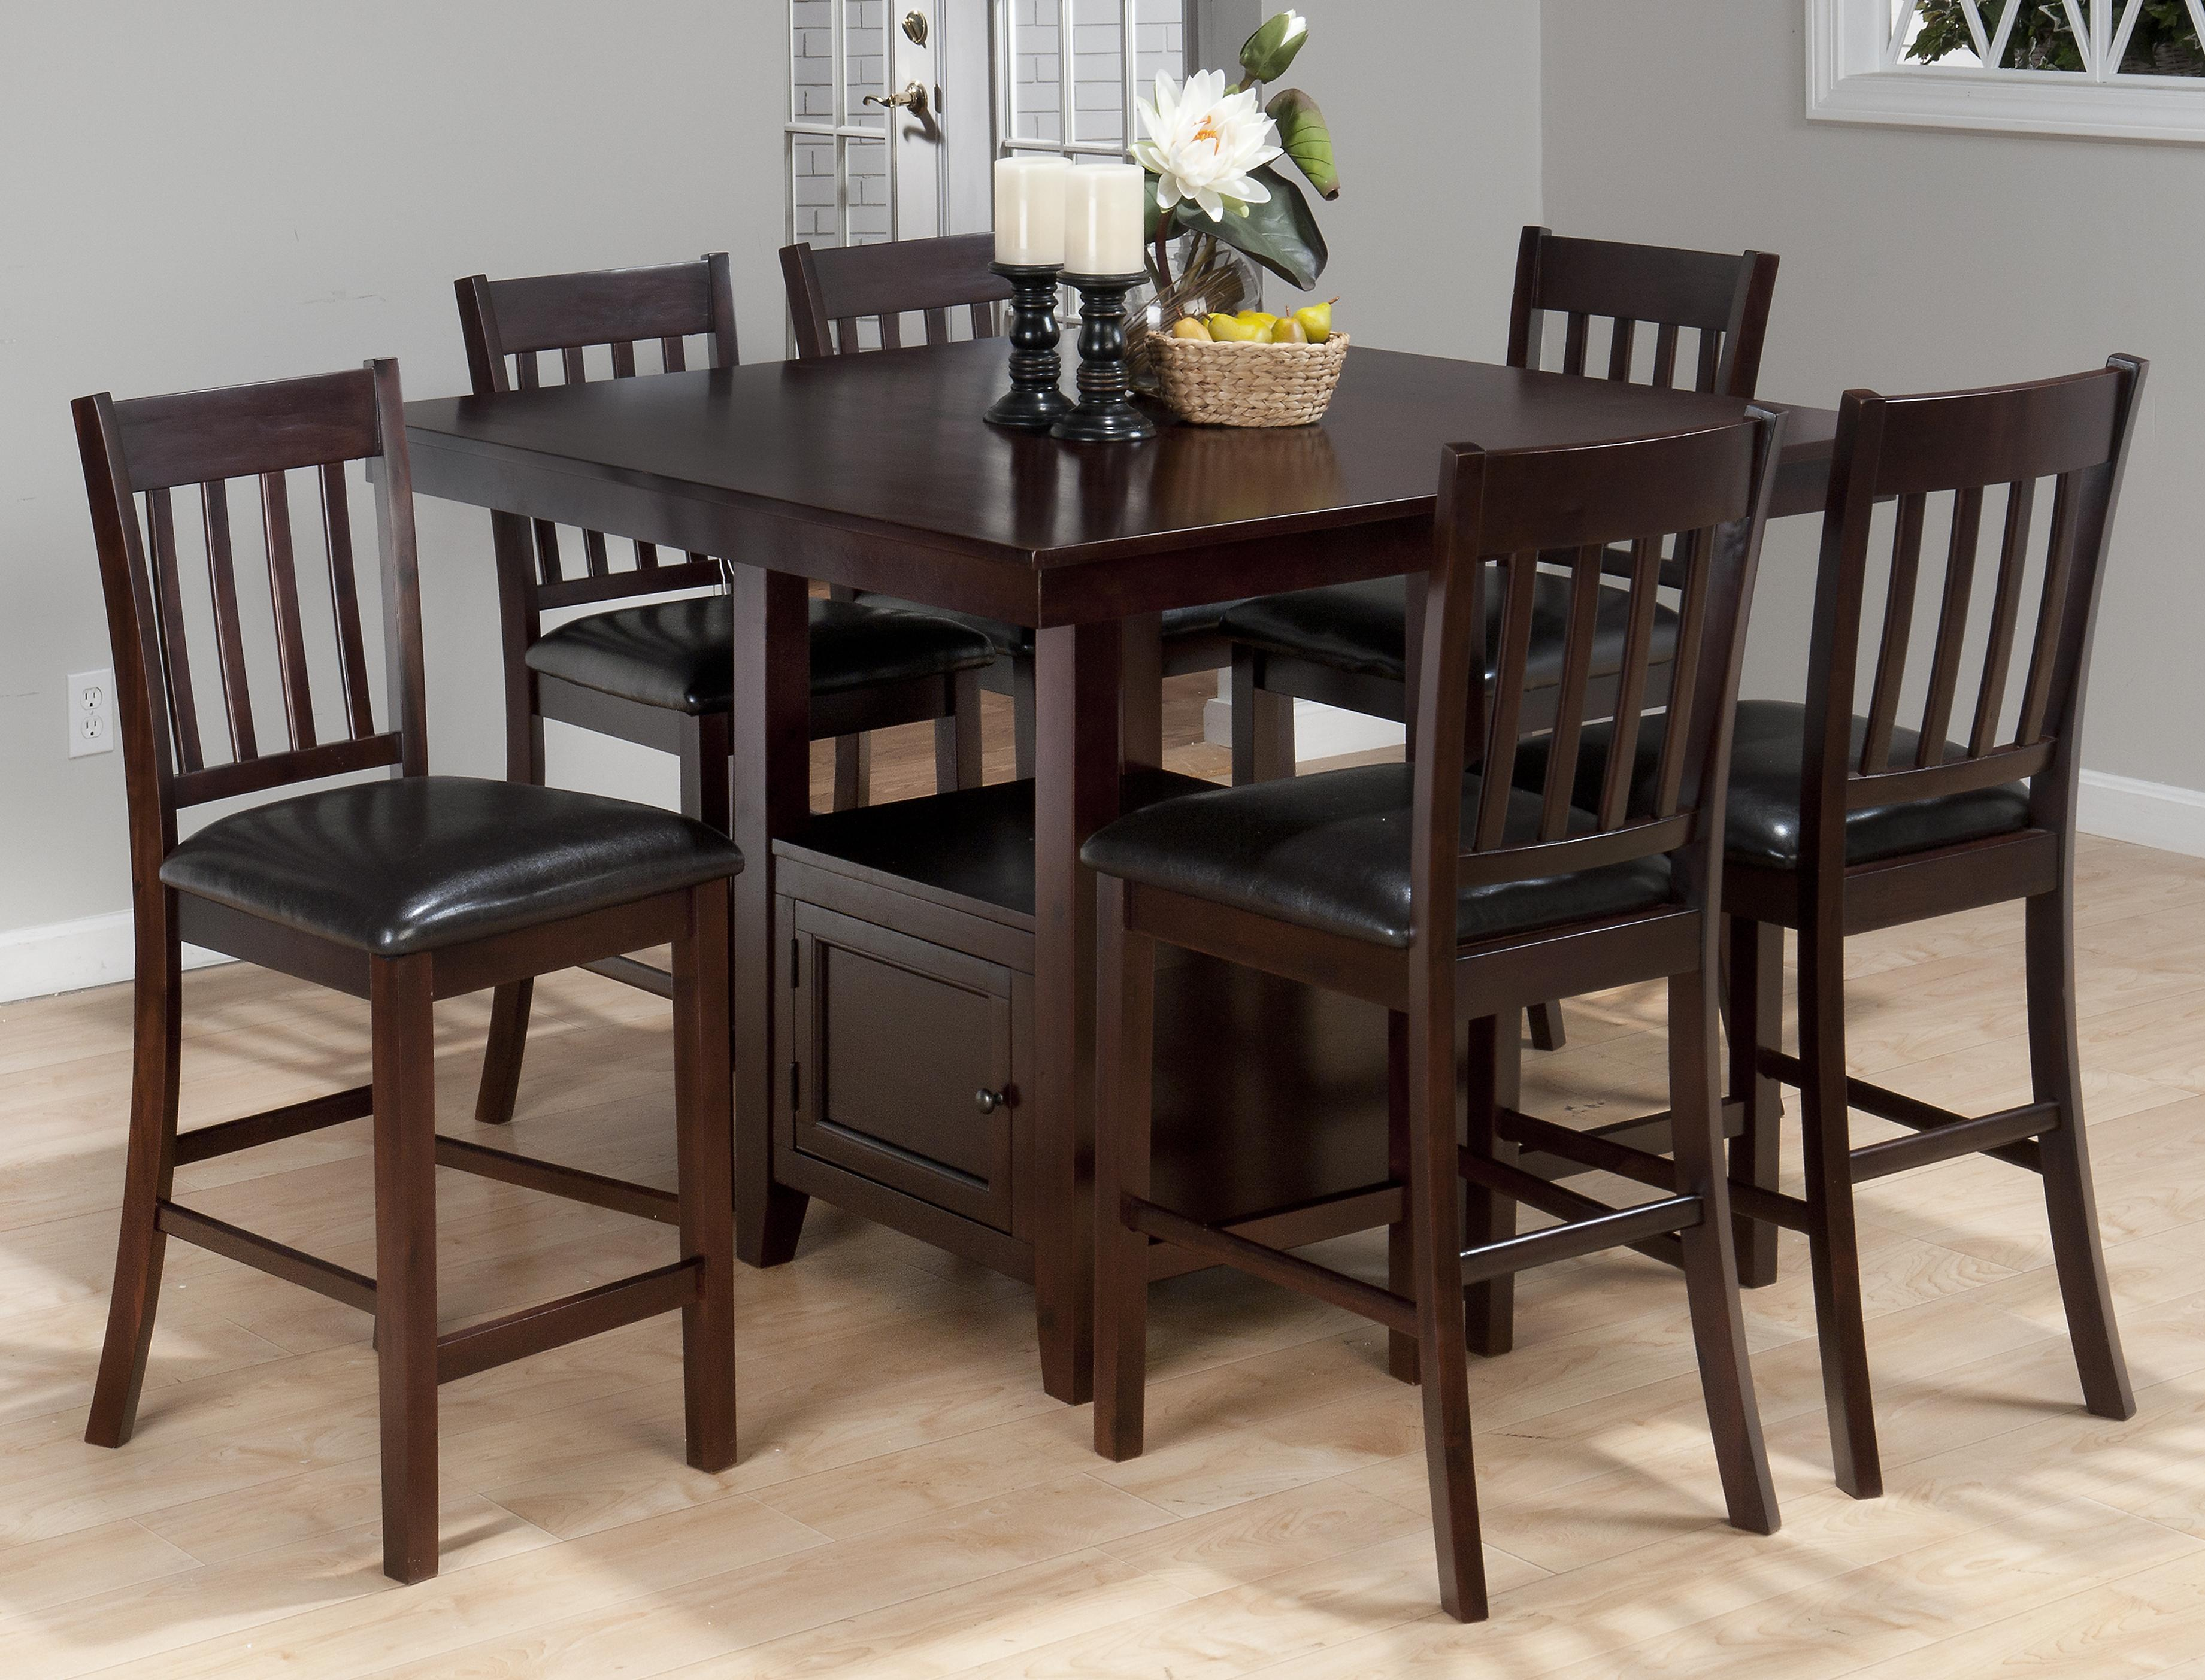 Jofran Tessa Chianti Casual Square Counter Height Table With Pedestal  Storage   Boulevard Home Furnishings   Pub Tables